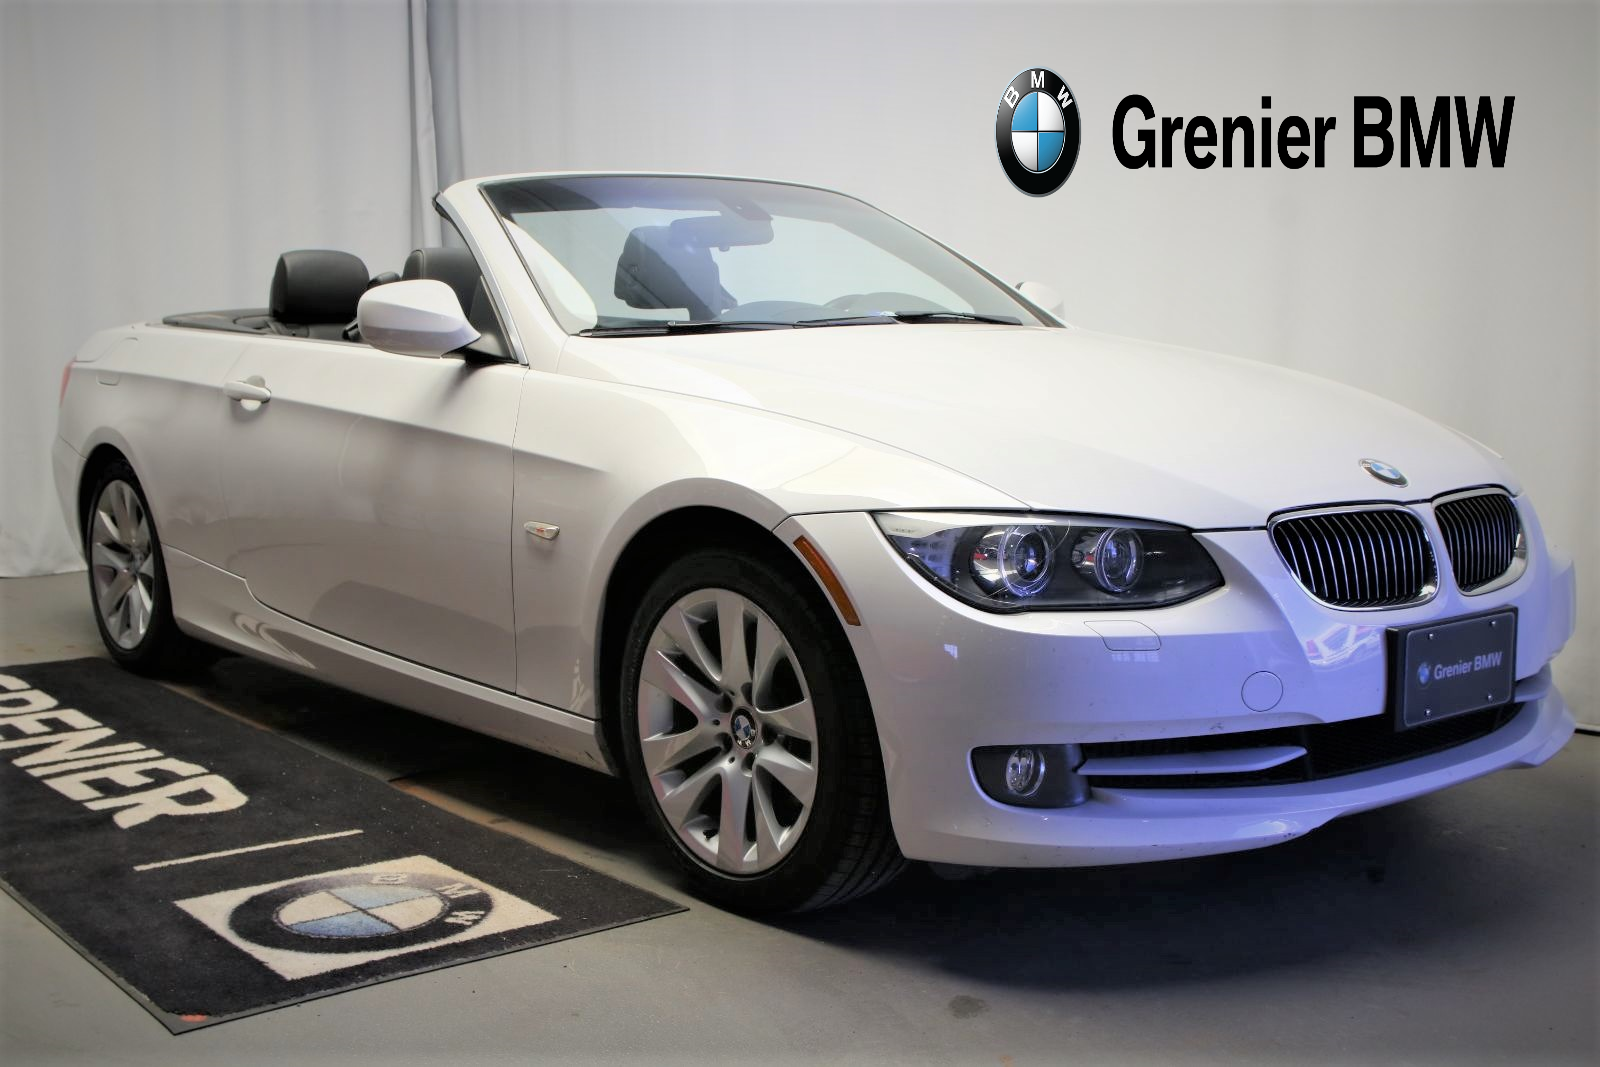 Used 2011 Bmw 328i Convertible Groupe Premium Groupe Executif White 91 283 Km For Sale 19995 0 Grenier Bmw 180383a